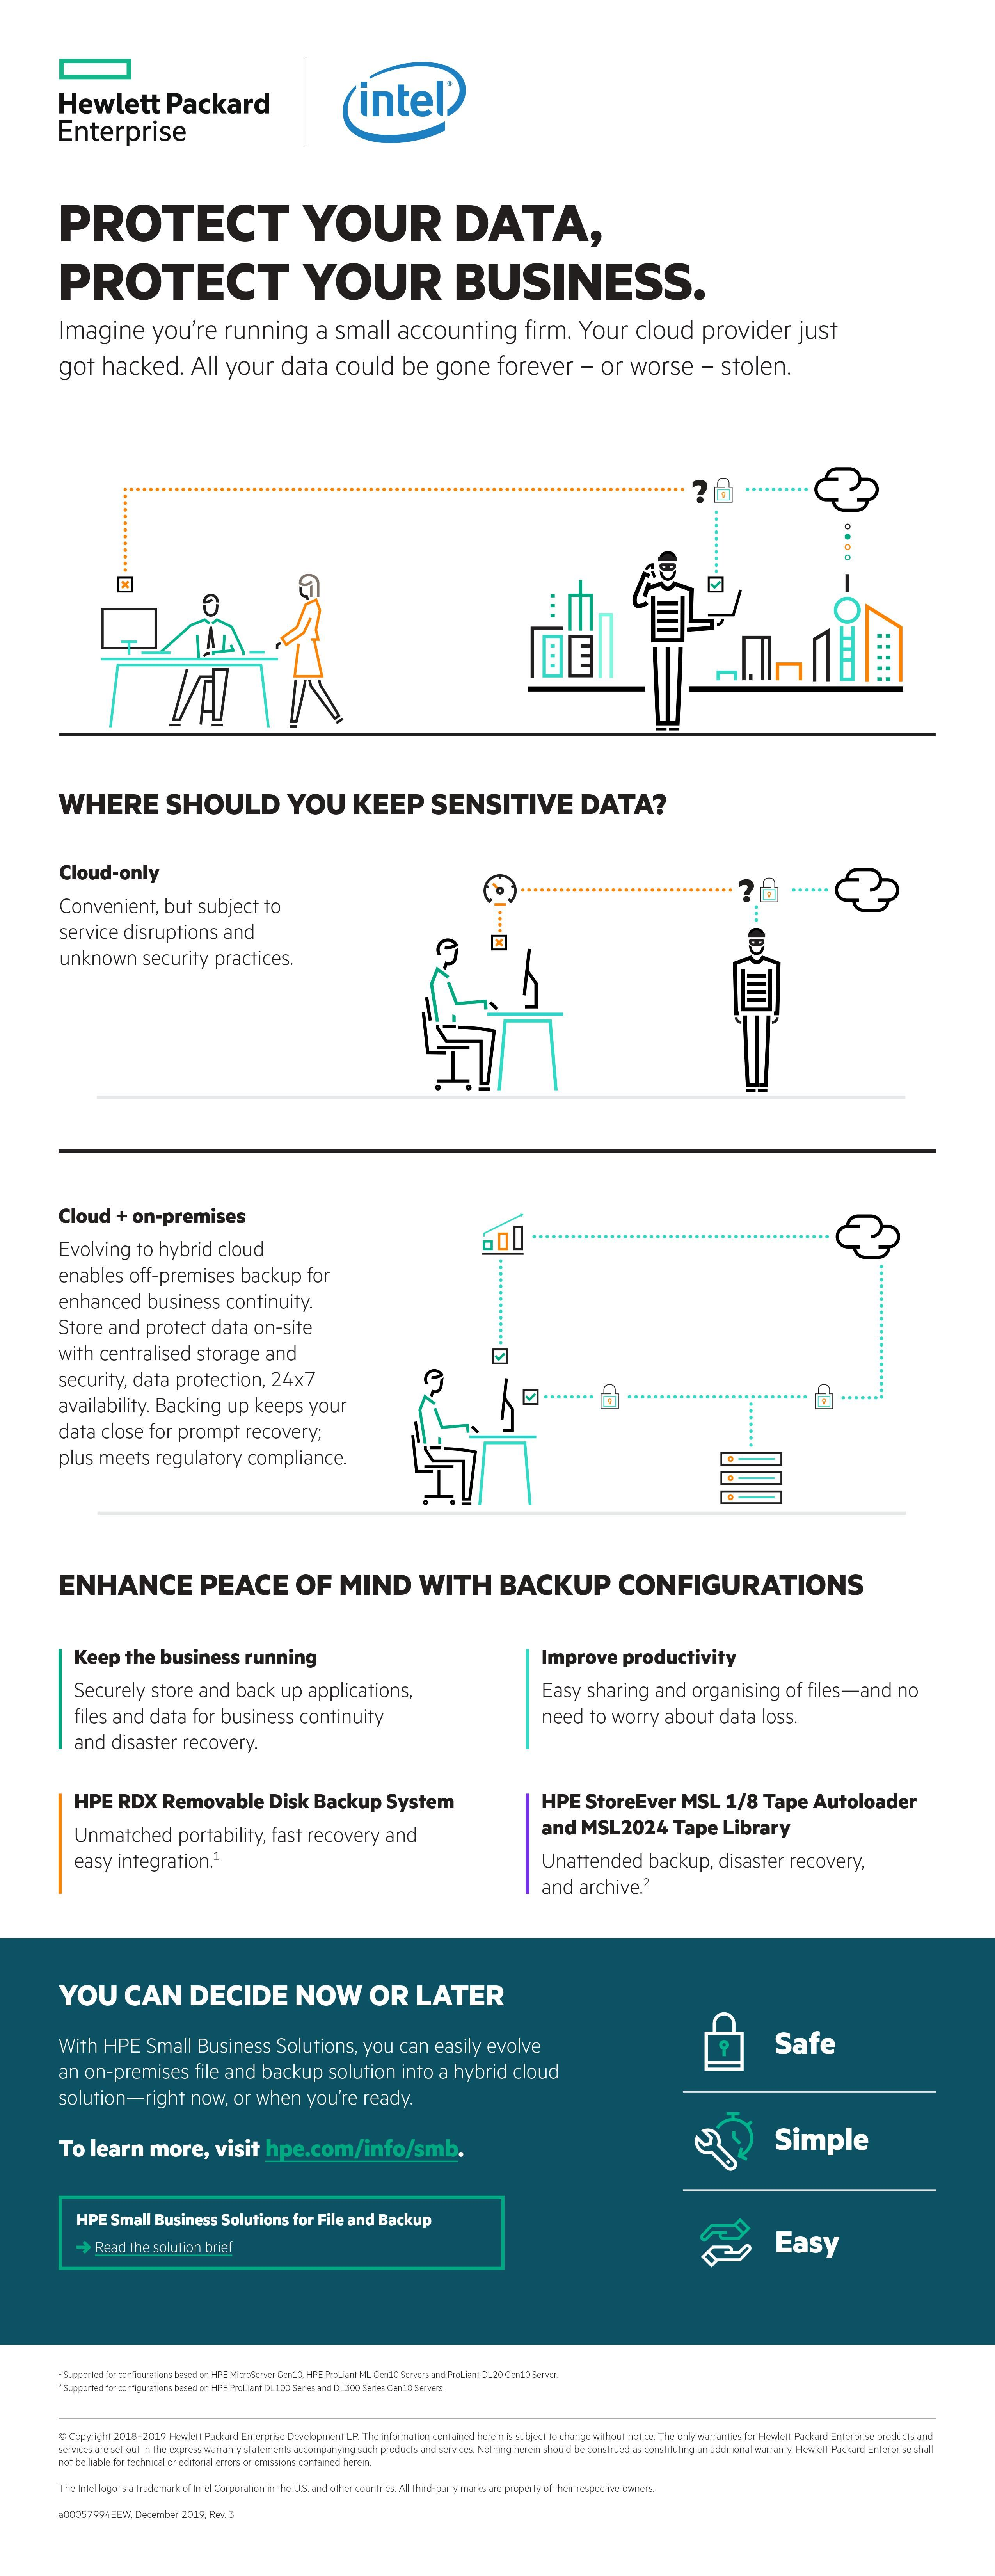 Hpe Hybrid Cloud Security Solution In 2020 Security Solutions Data Backup Data Security